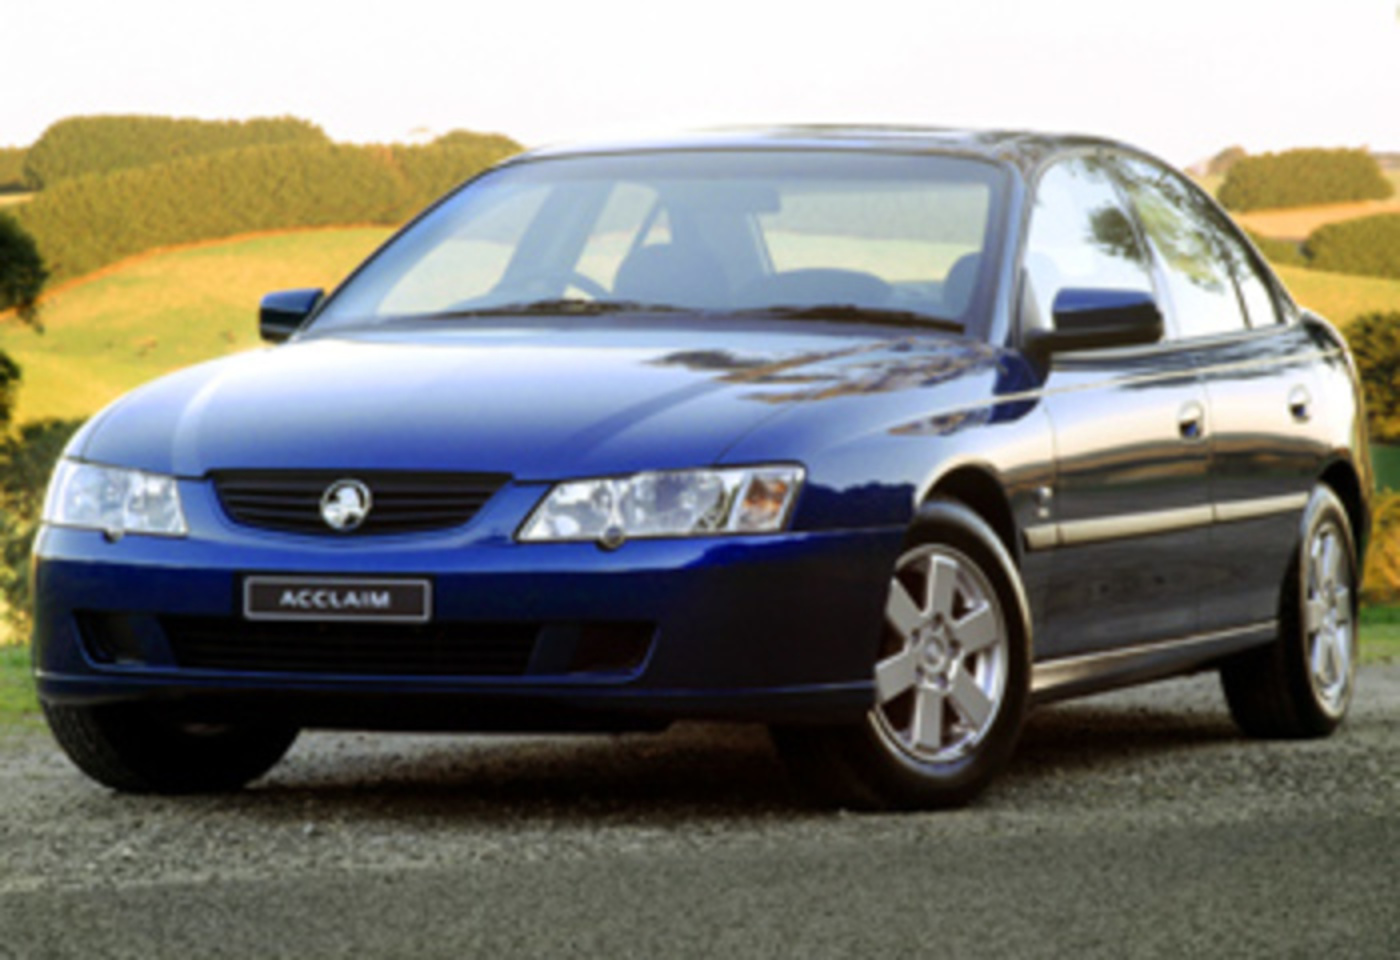 image Photo Gallery. Graham 'Smithy' Smith reviews the used Holden Commodore